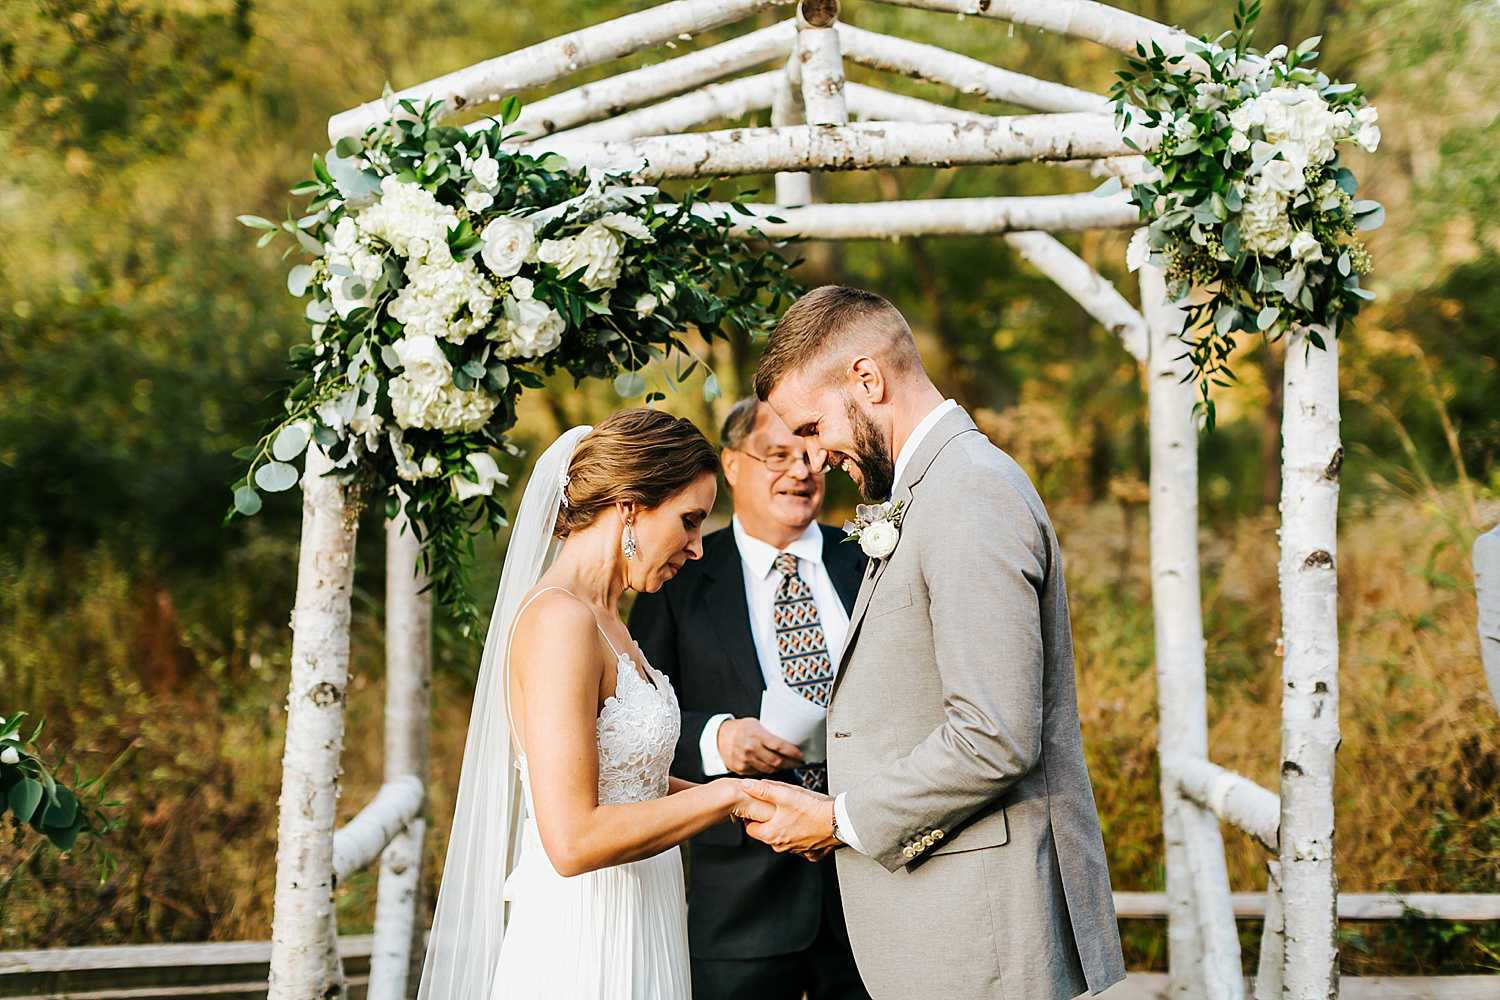 Fall wedding at philander chase knox by danfredo photos + films